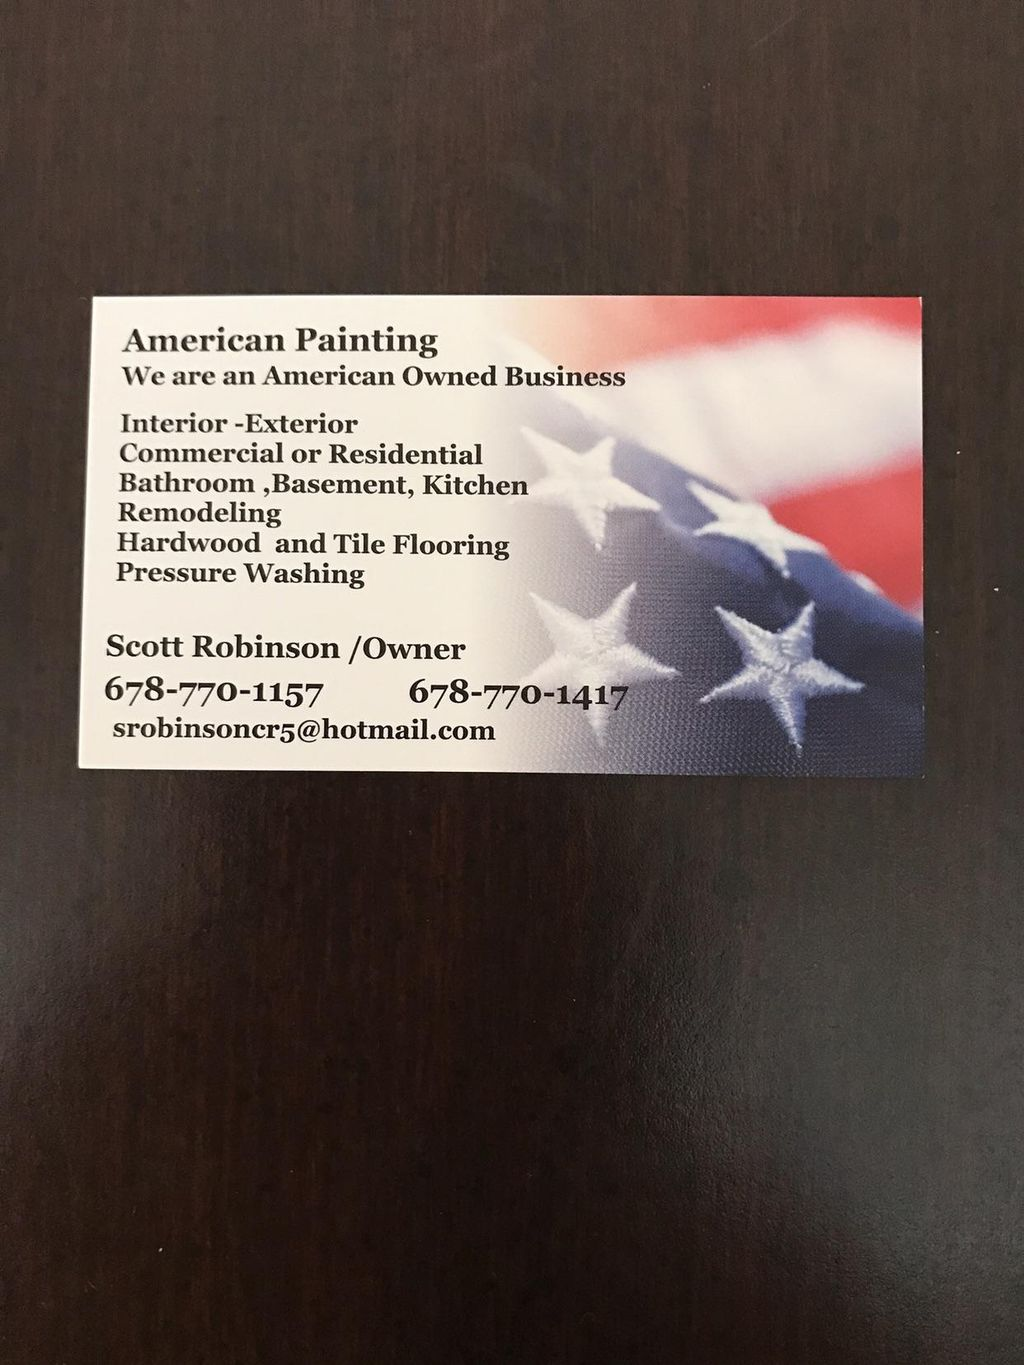 American painting and home repairs